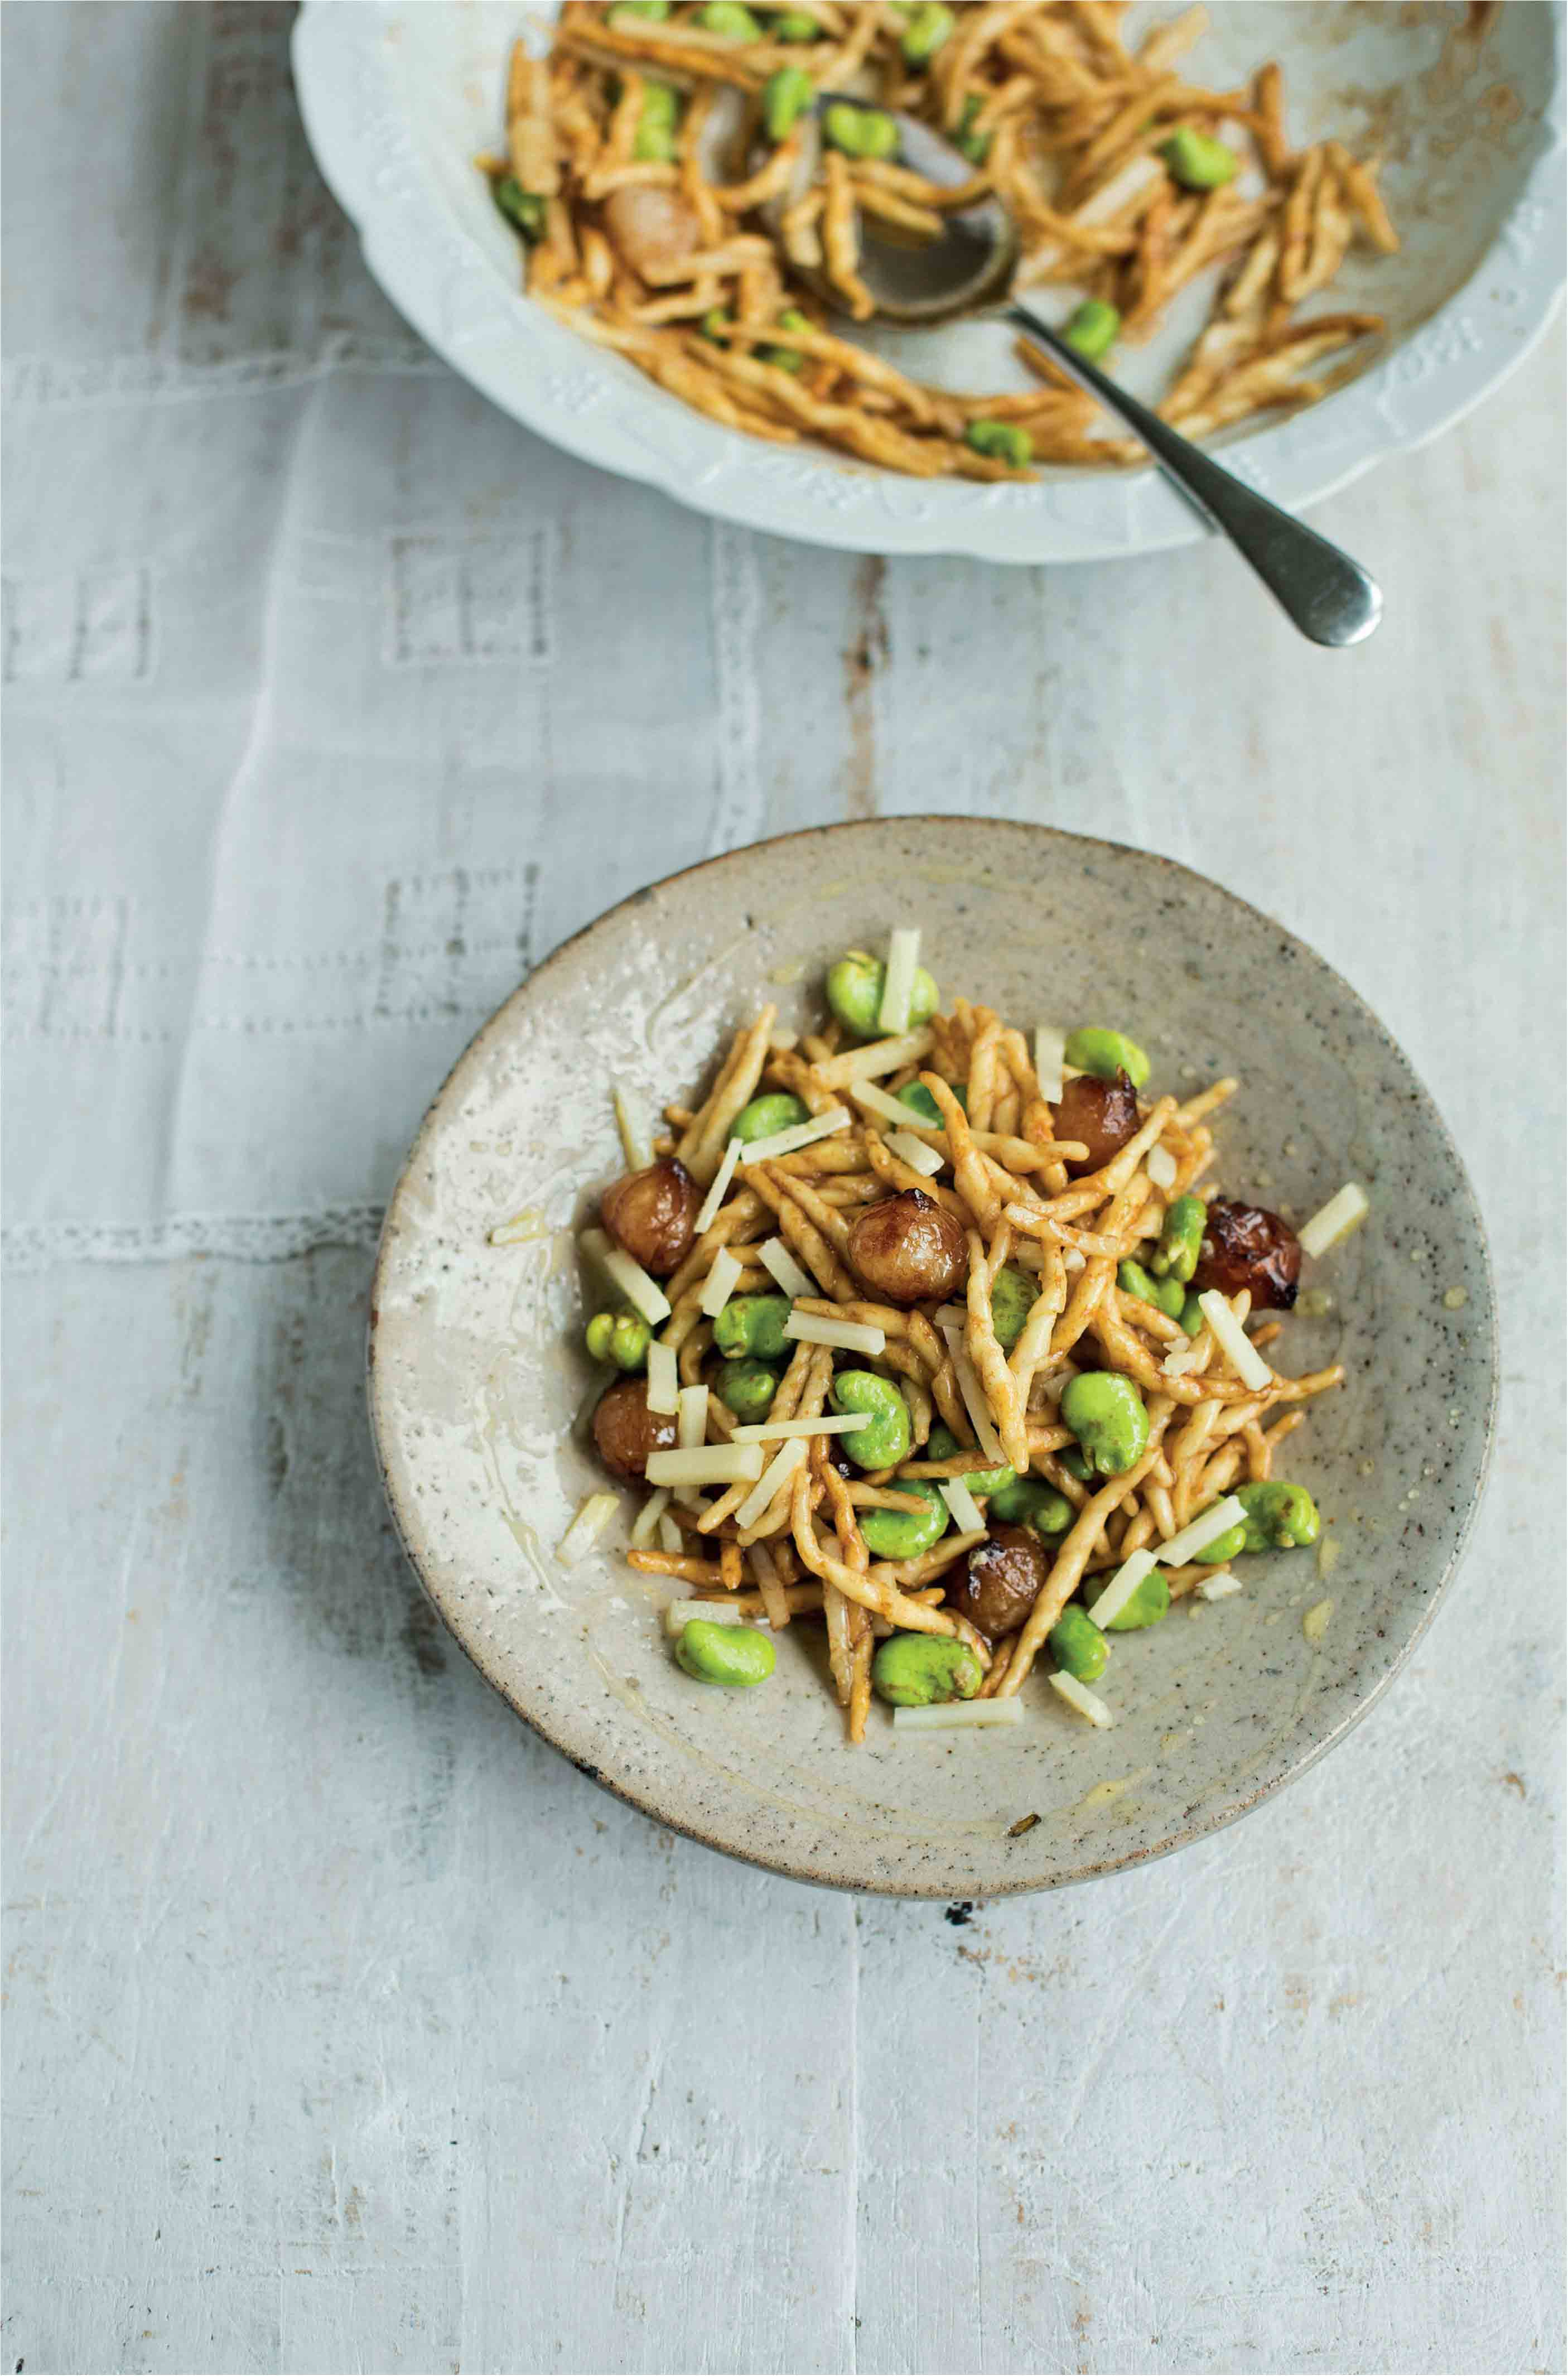 Short pasta salad with broad beans, balsamic onions and pecorino